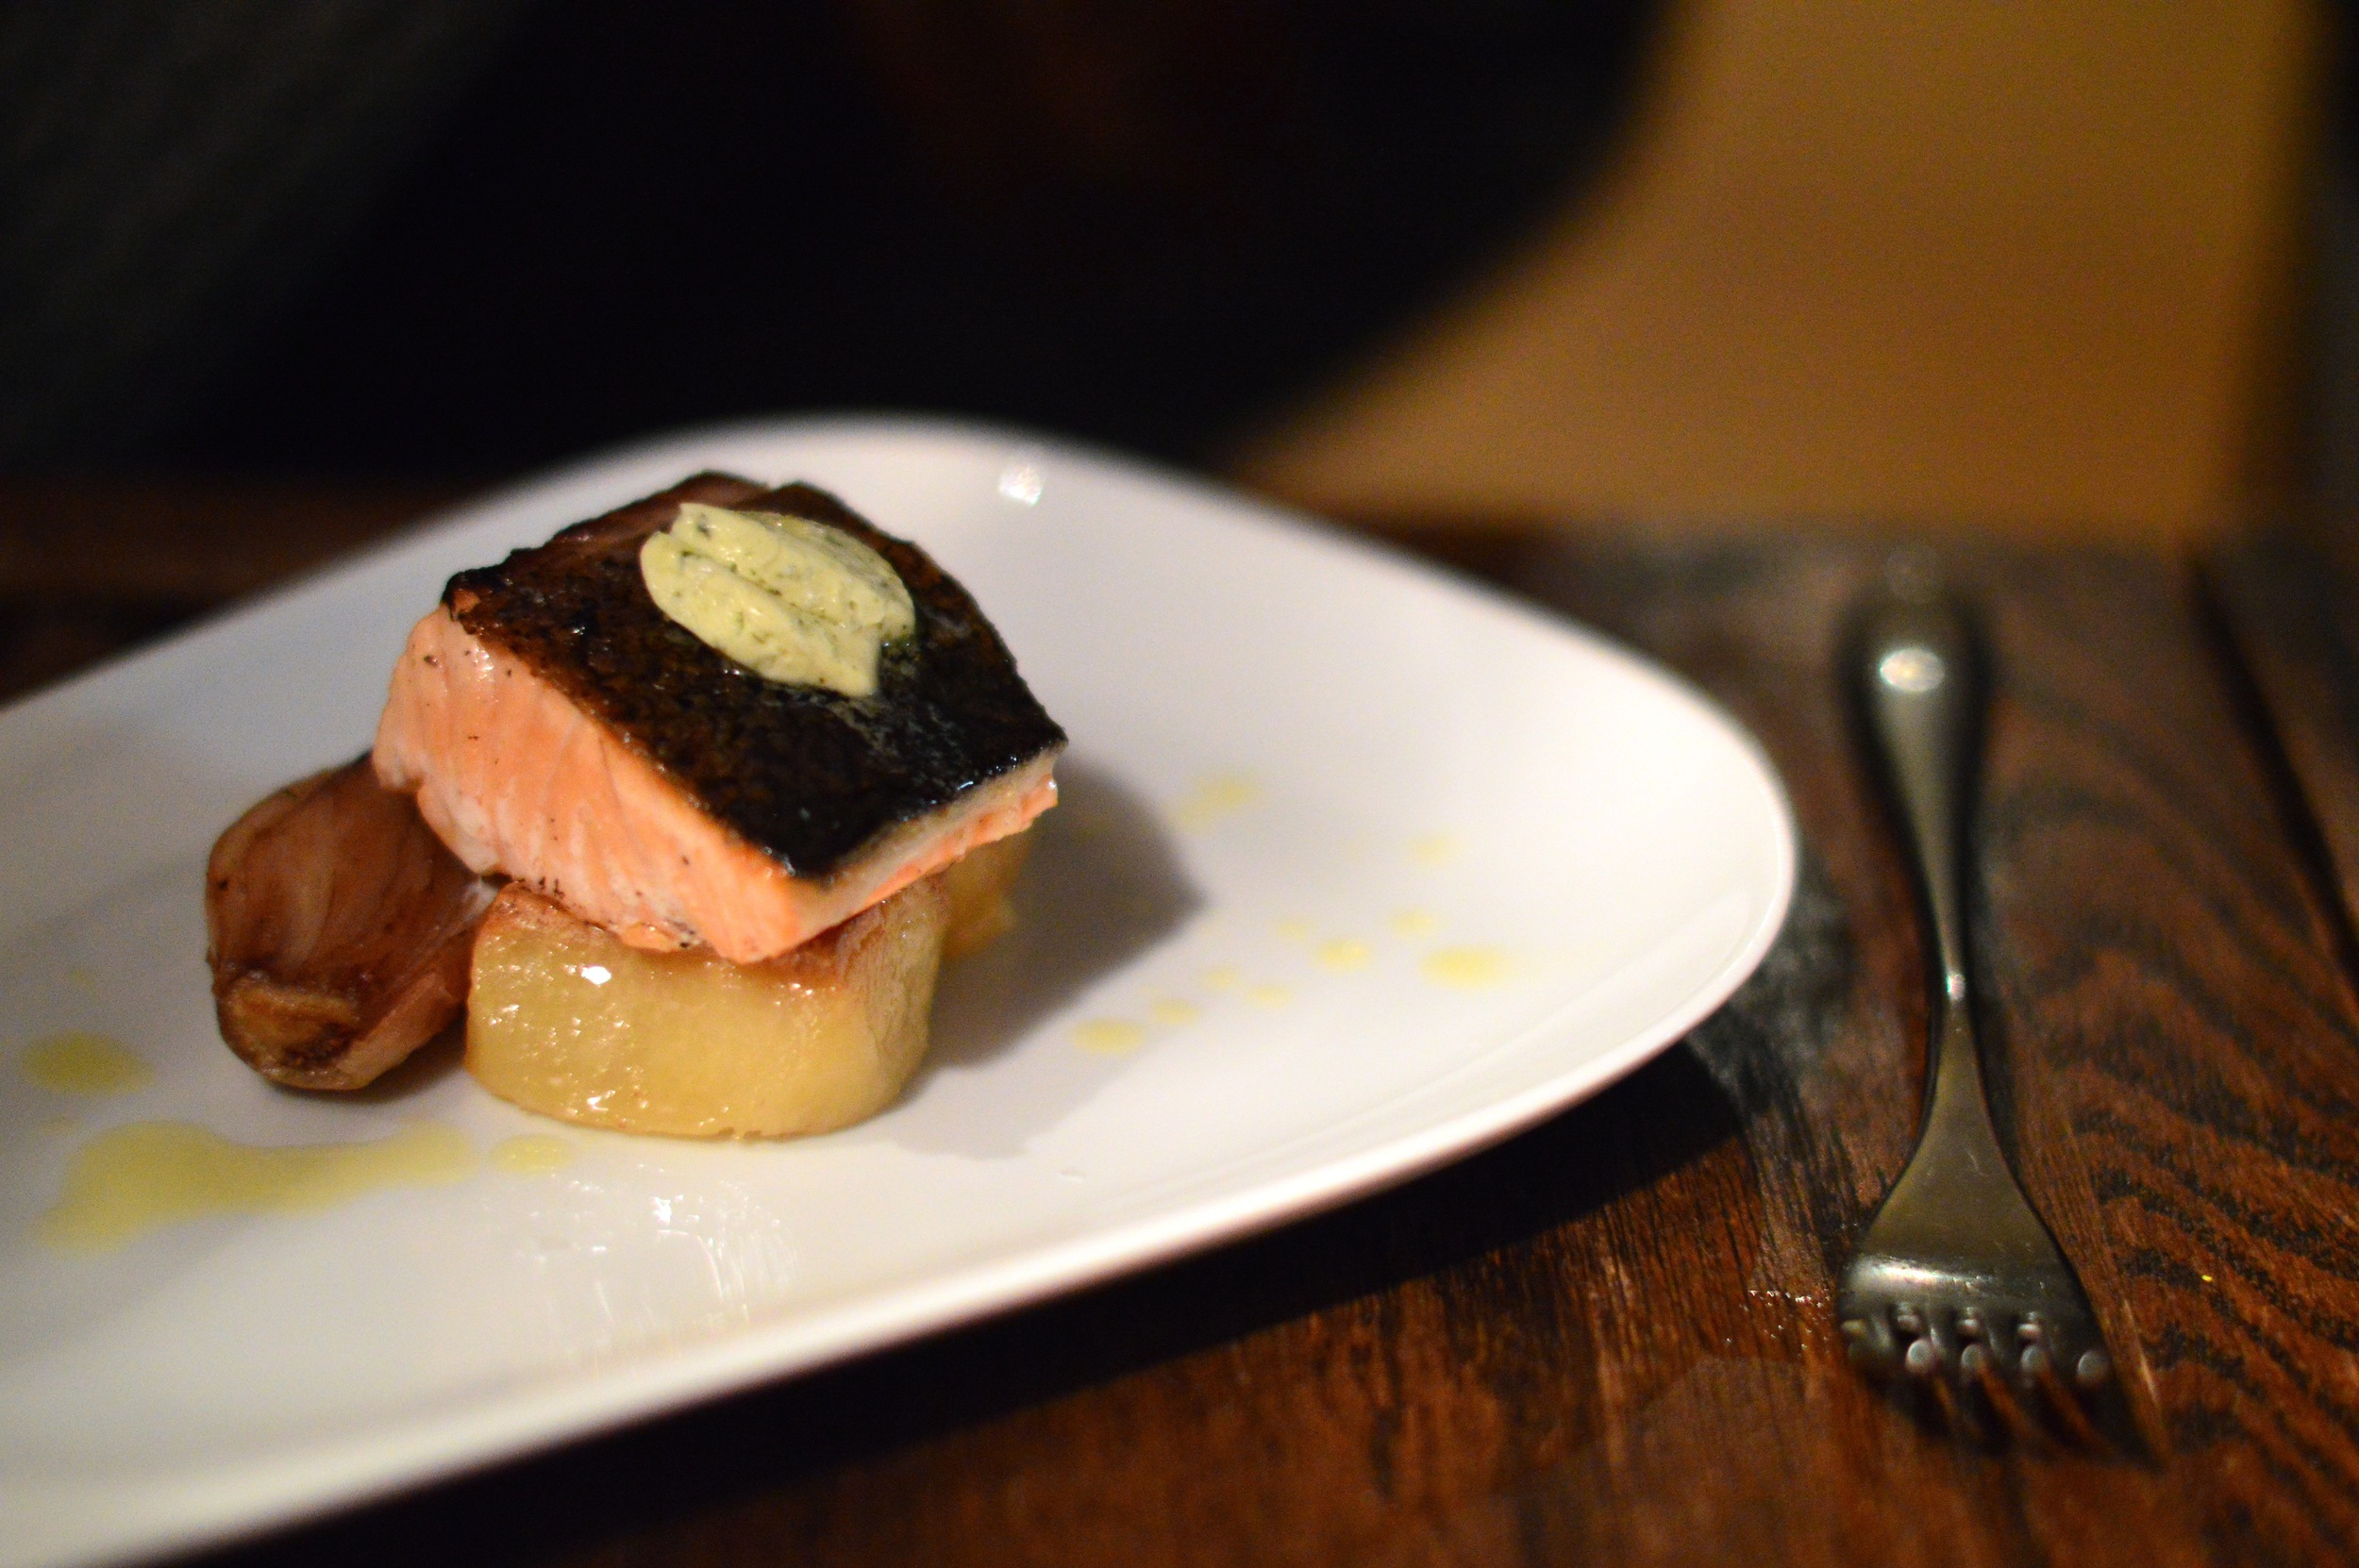 One of the mains was pan roasted salmon with tarragon butter, pommes fondant and roasted shallots.